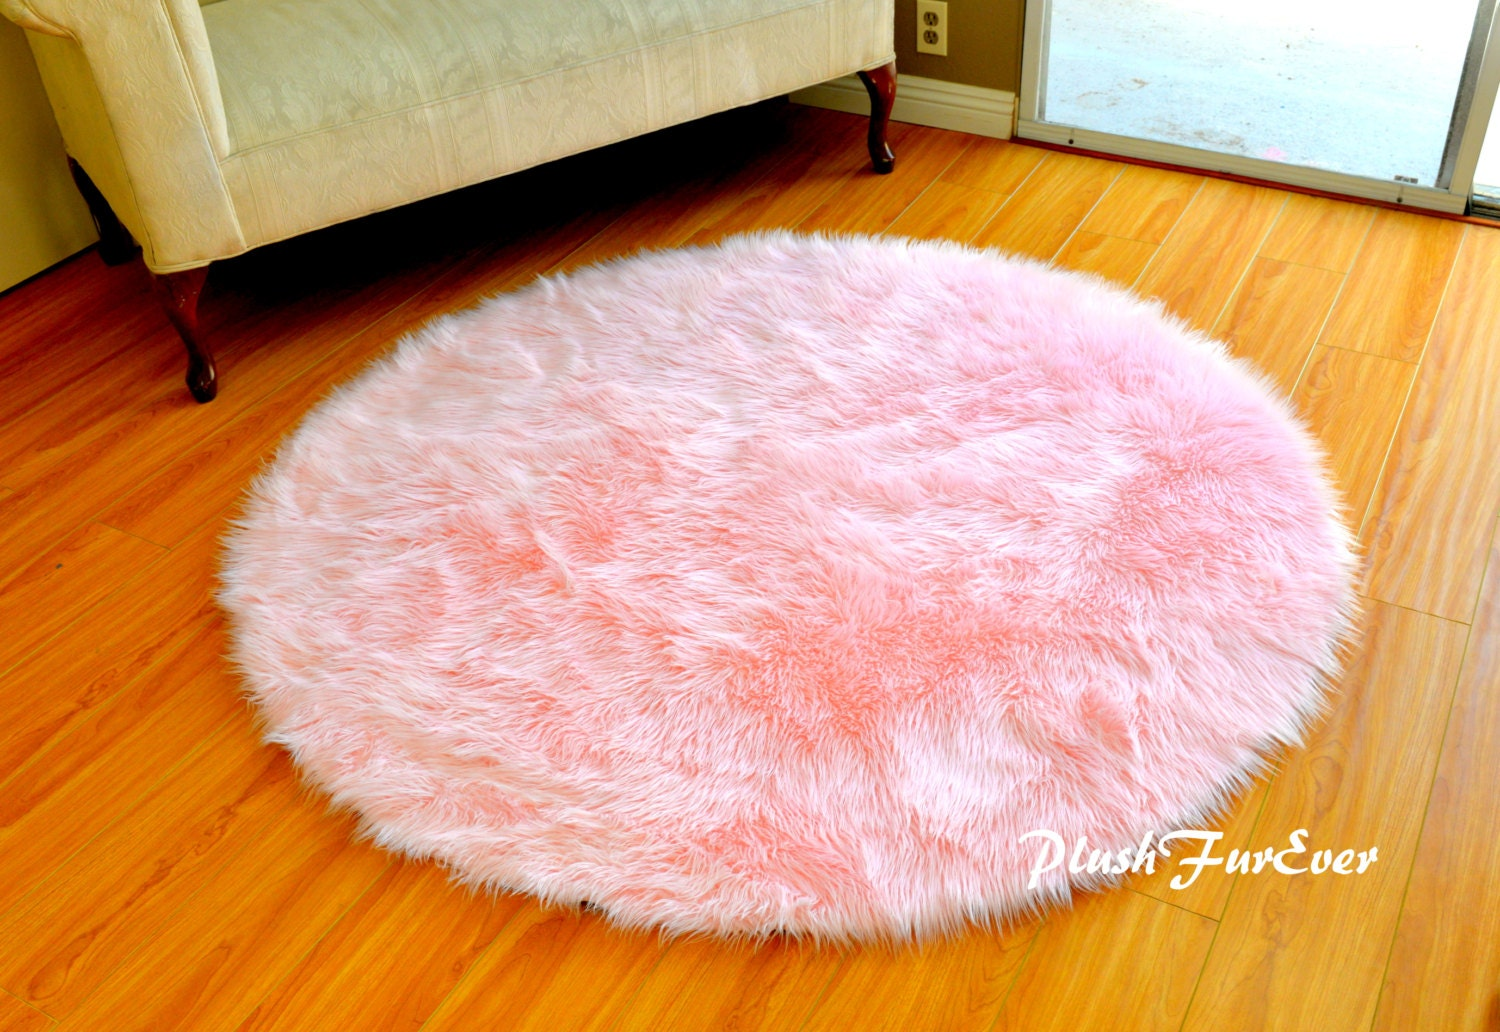 pink nursery rug baby pink luxury faux fur throw area rug. Black Bedroom Furniture Sets. Home Design Ideas